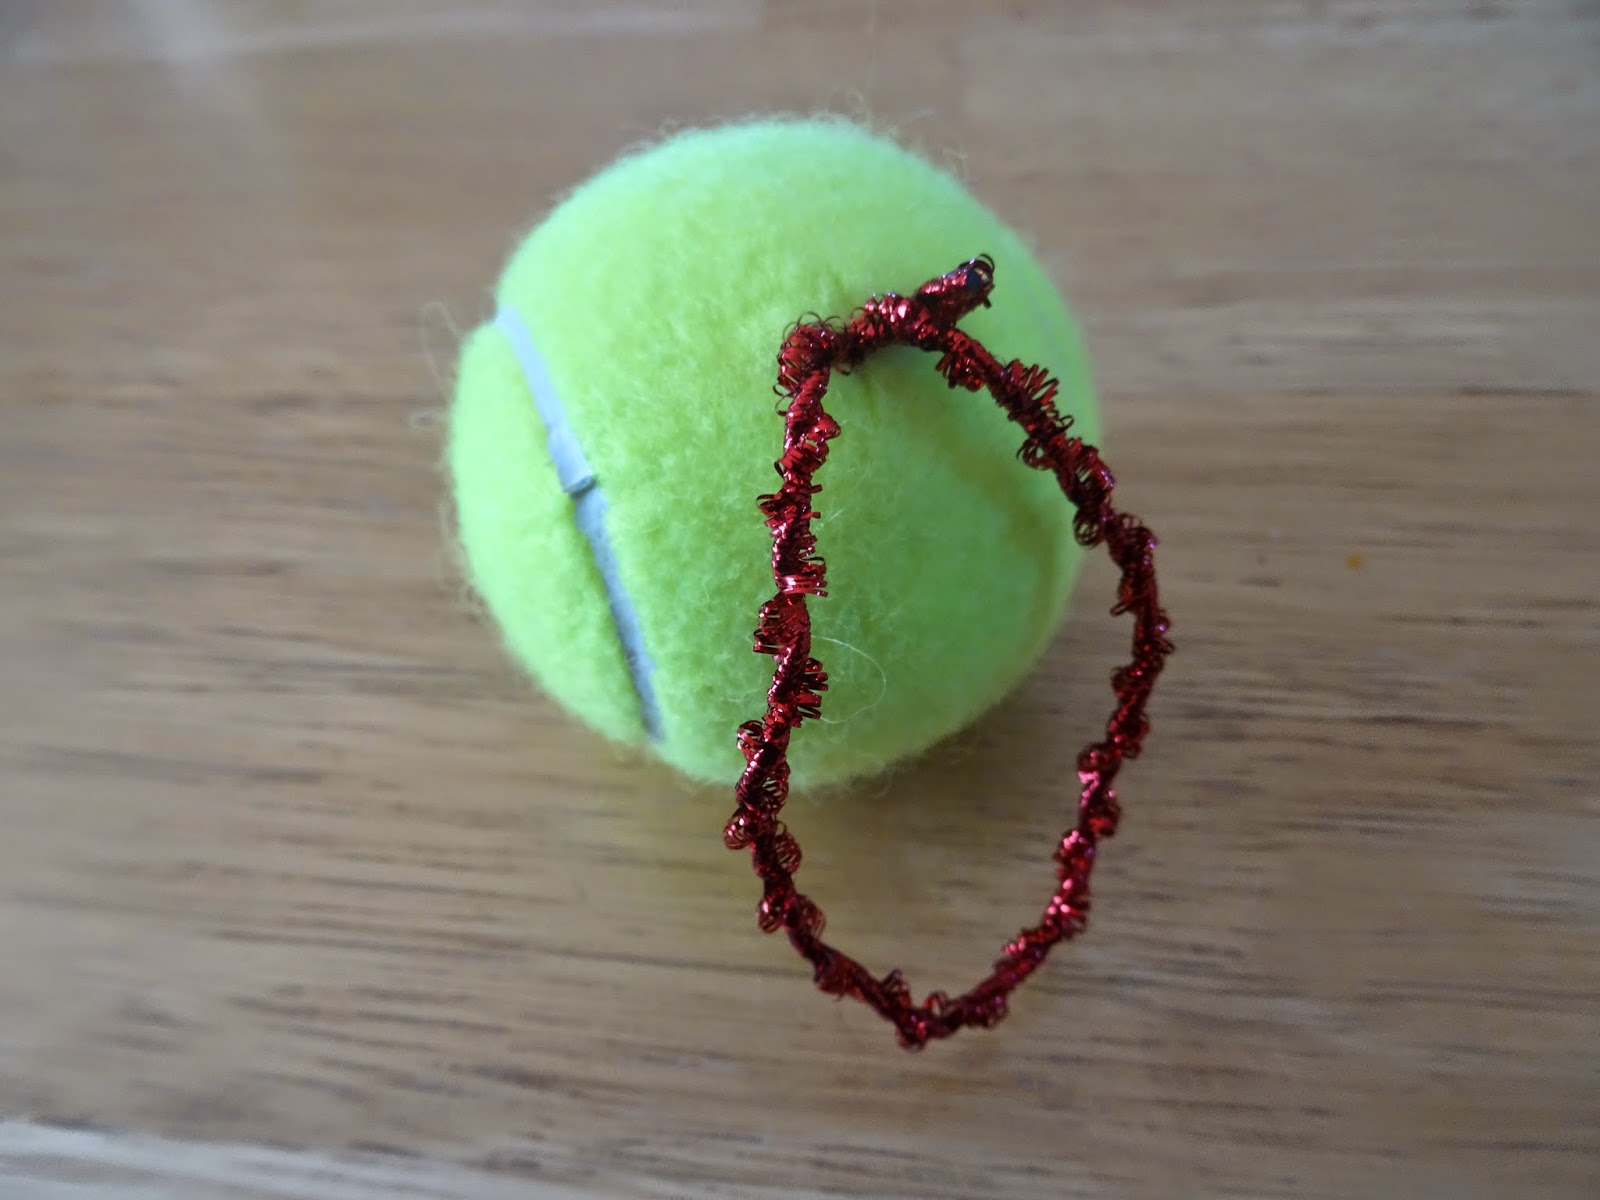 Tennis christmas ornaments - Stuff The Knot Into The Hole In The Top Of The Tennis Ball I Used The Scissors To Help Stuff It In The Ball